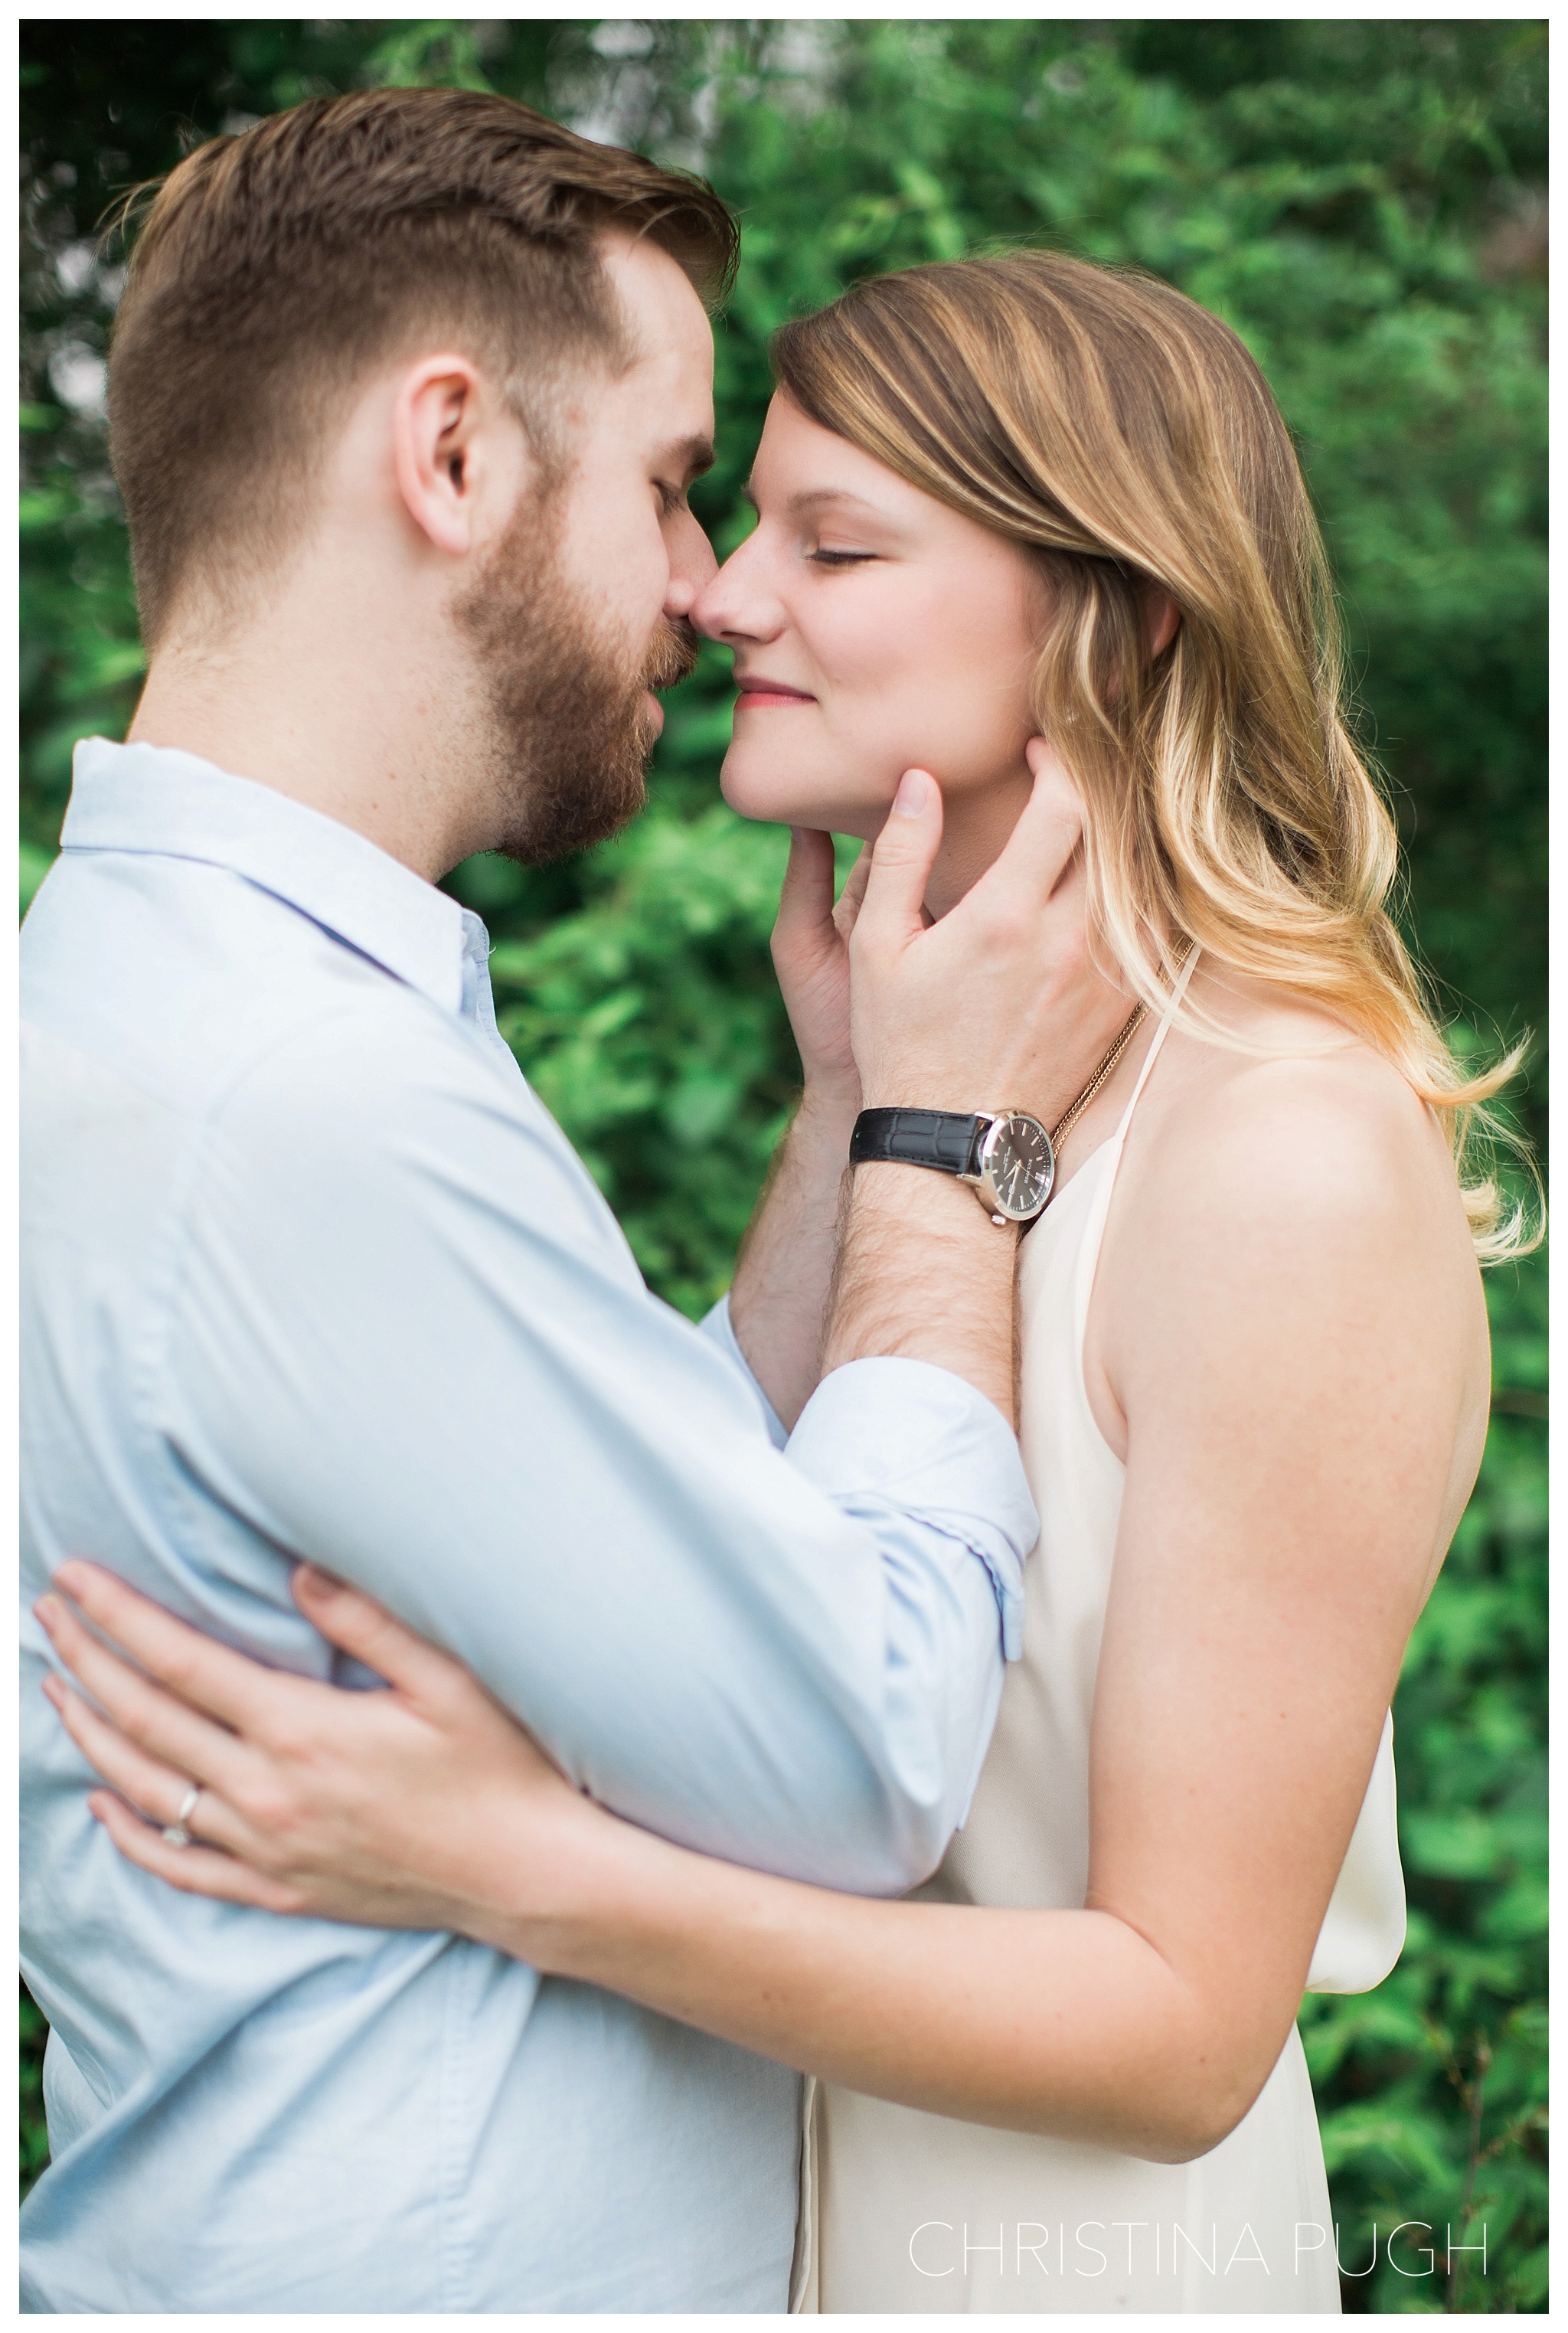 Acworth-Kennesaw-Engagement-Photography-Christina-Pugh-2